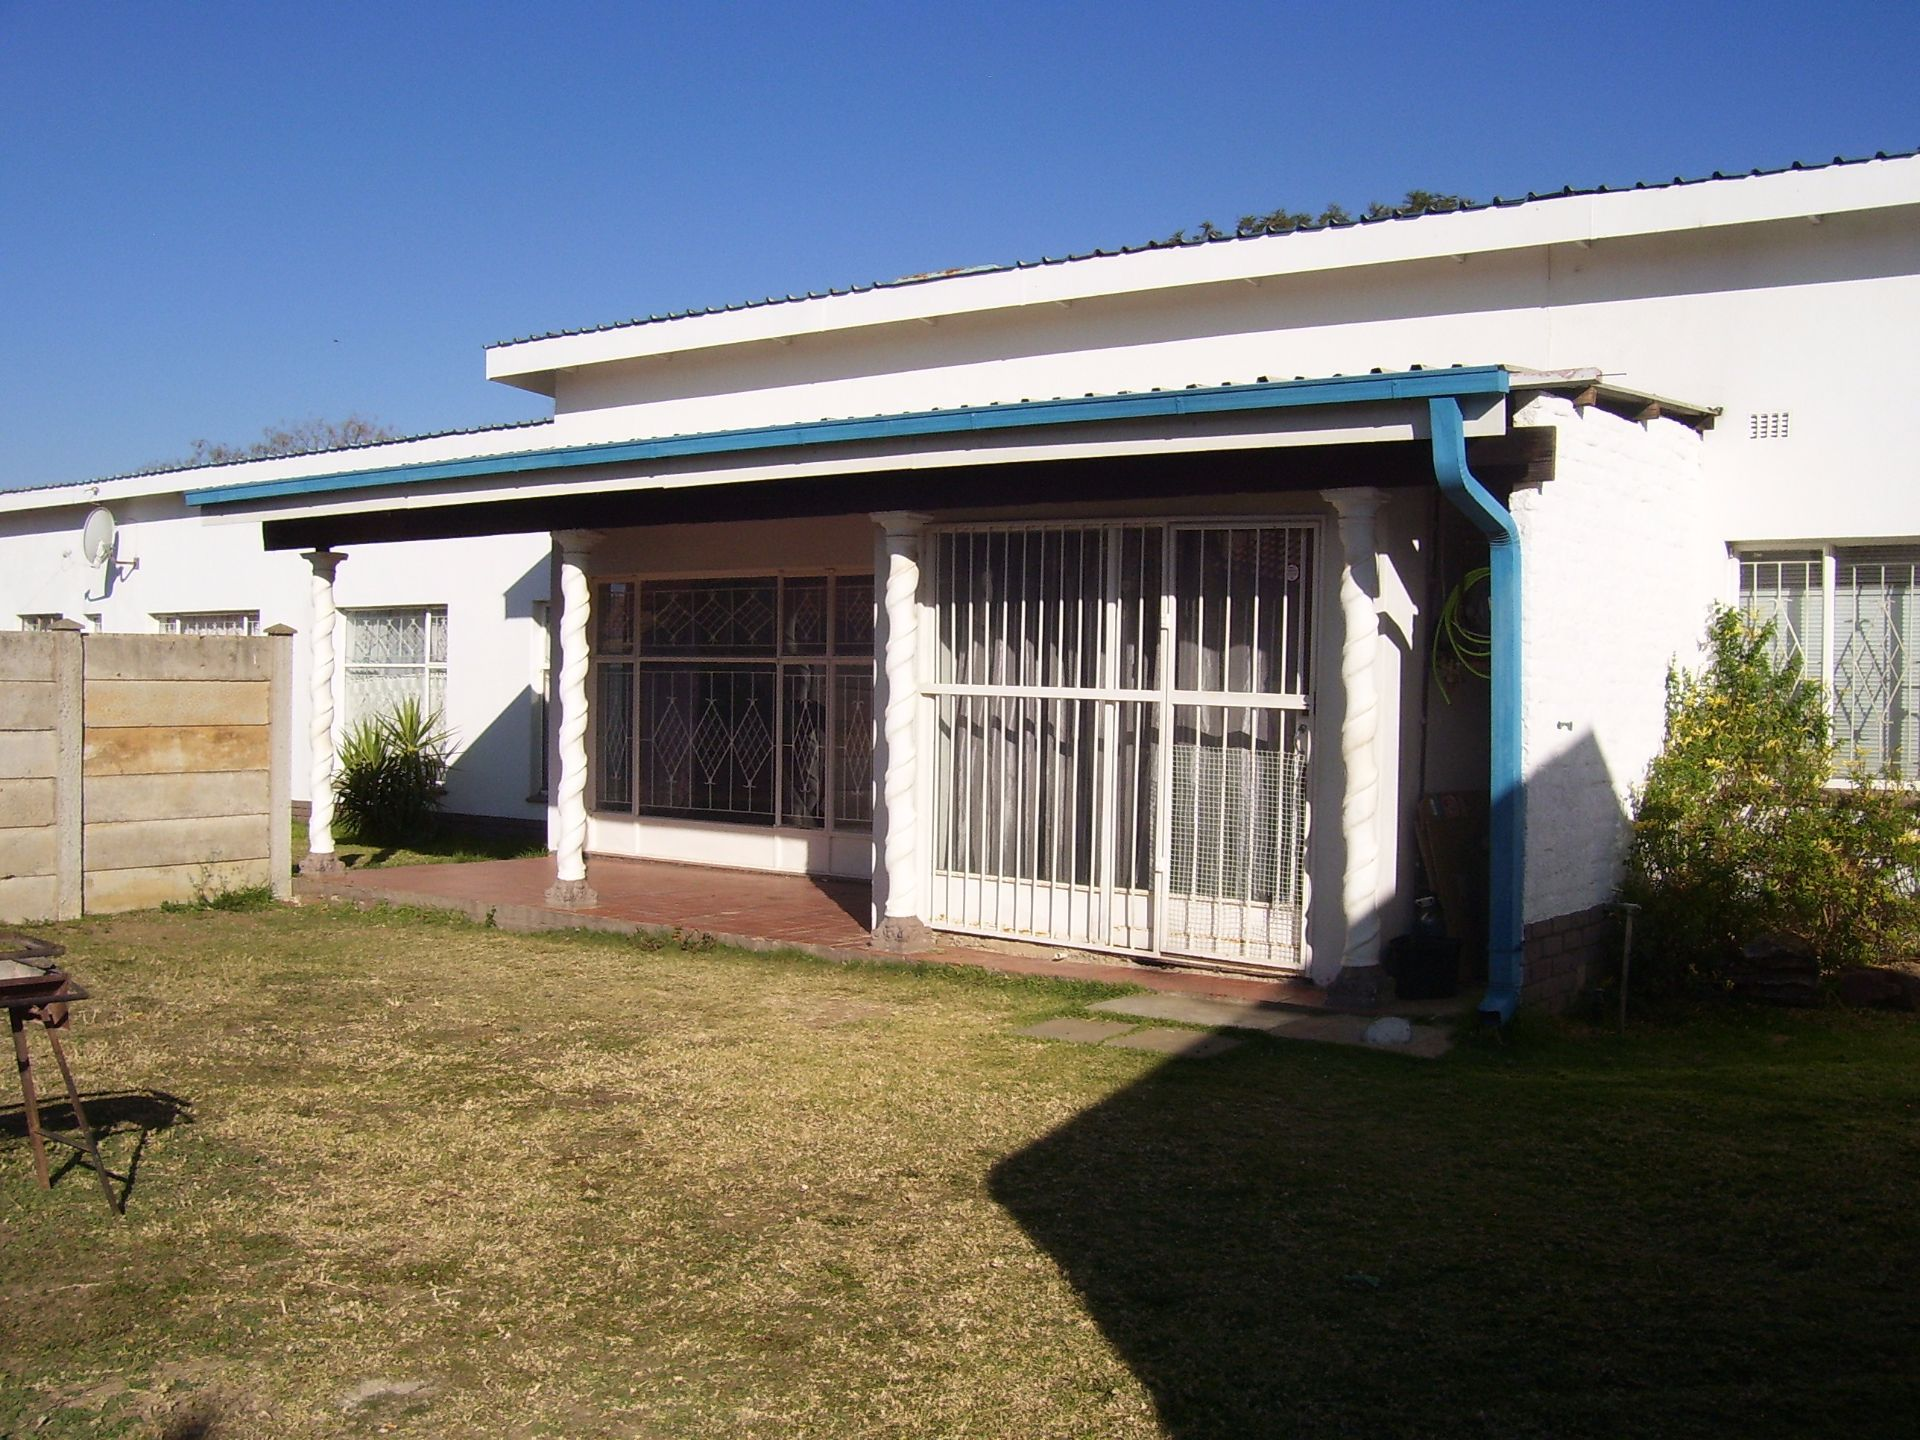 Suid Dorp property for sale. Ref No: 13503270. Picture no 7